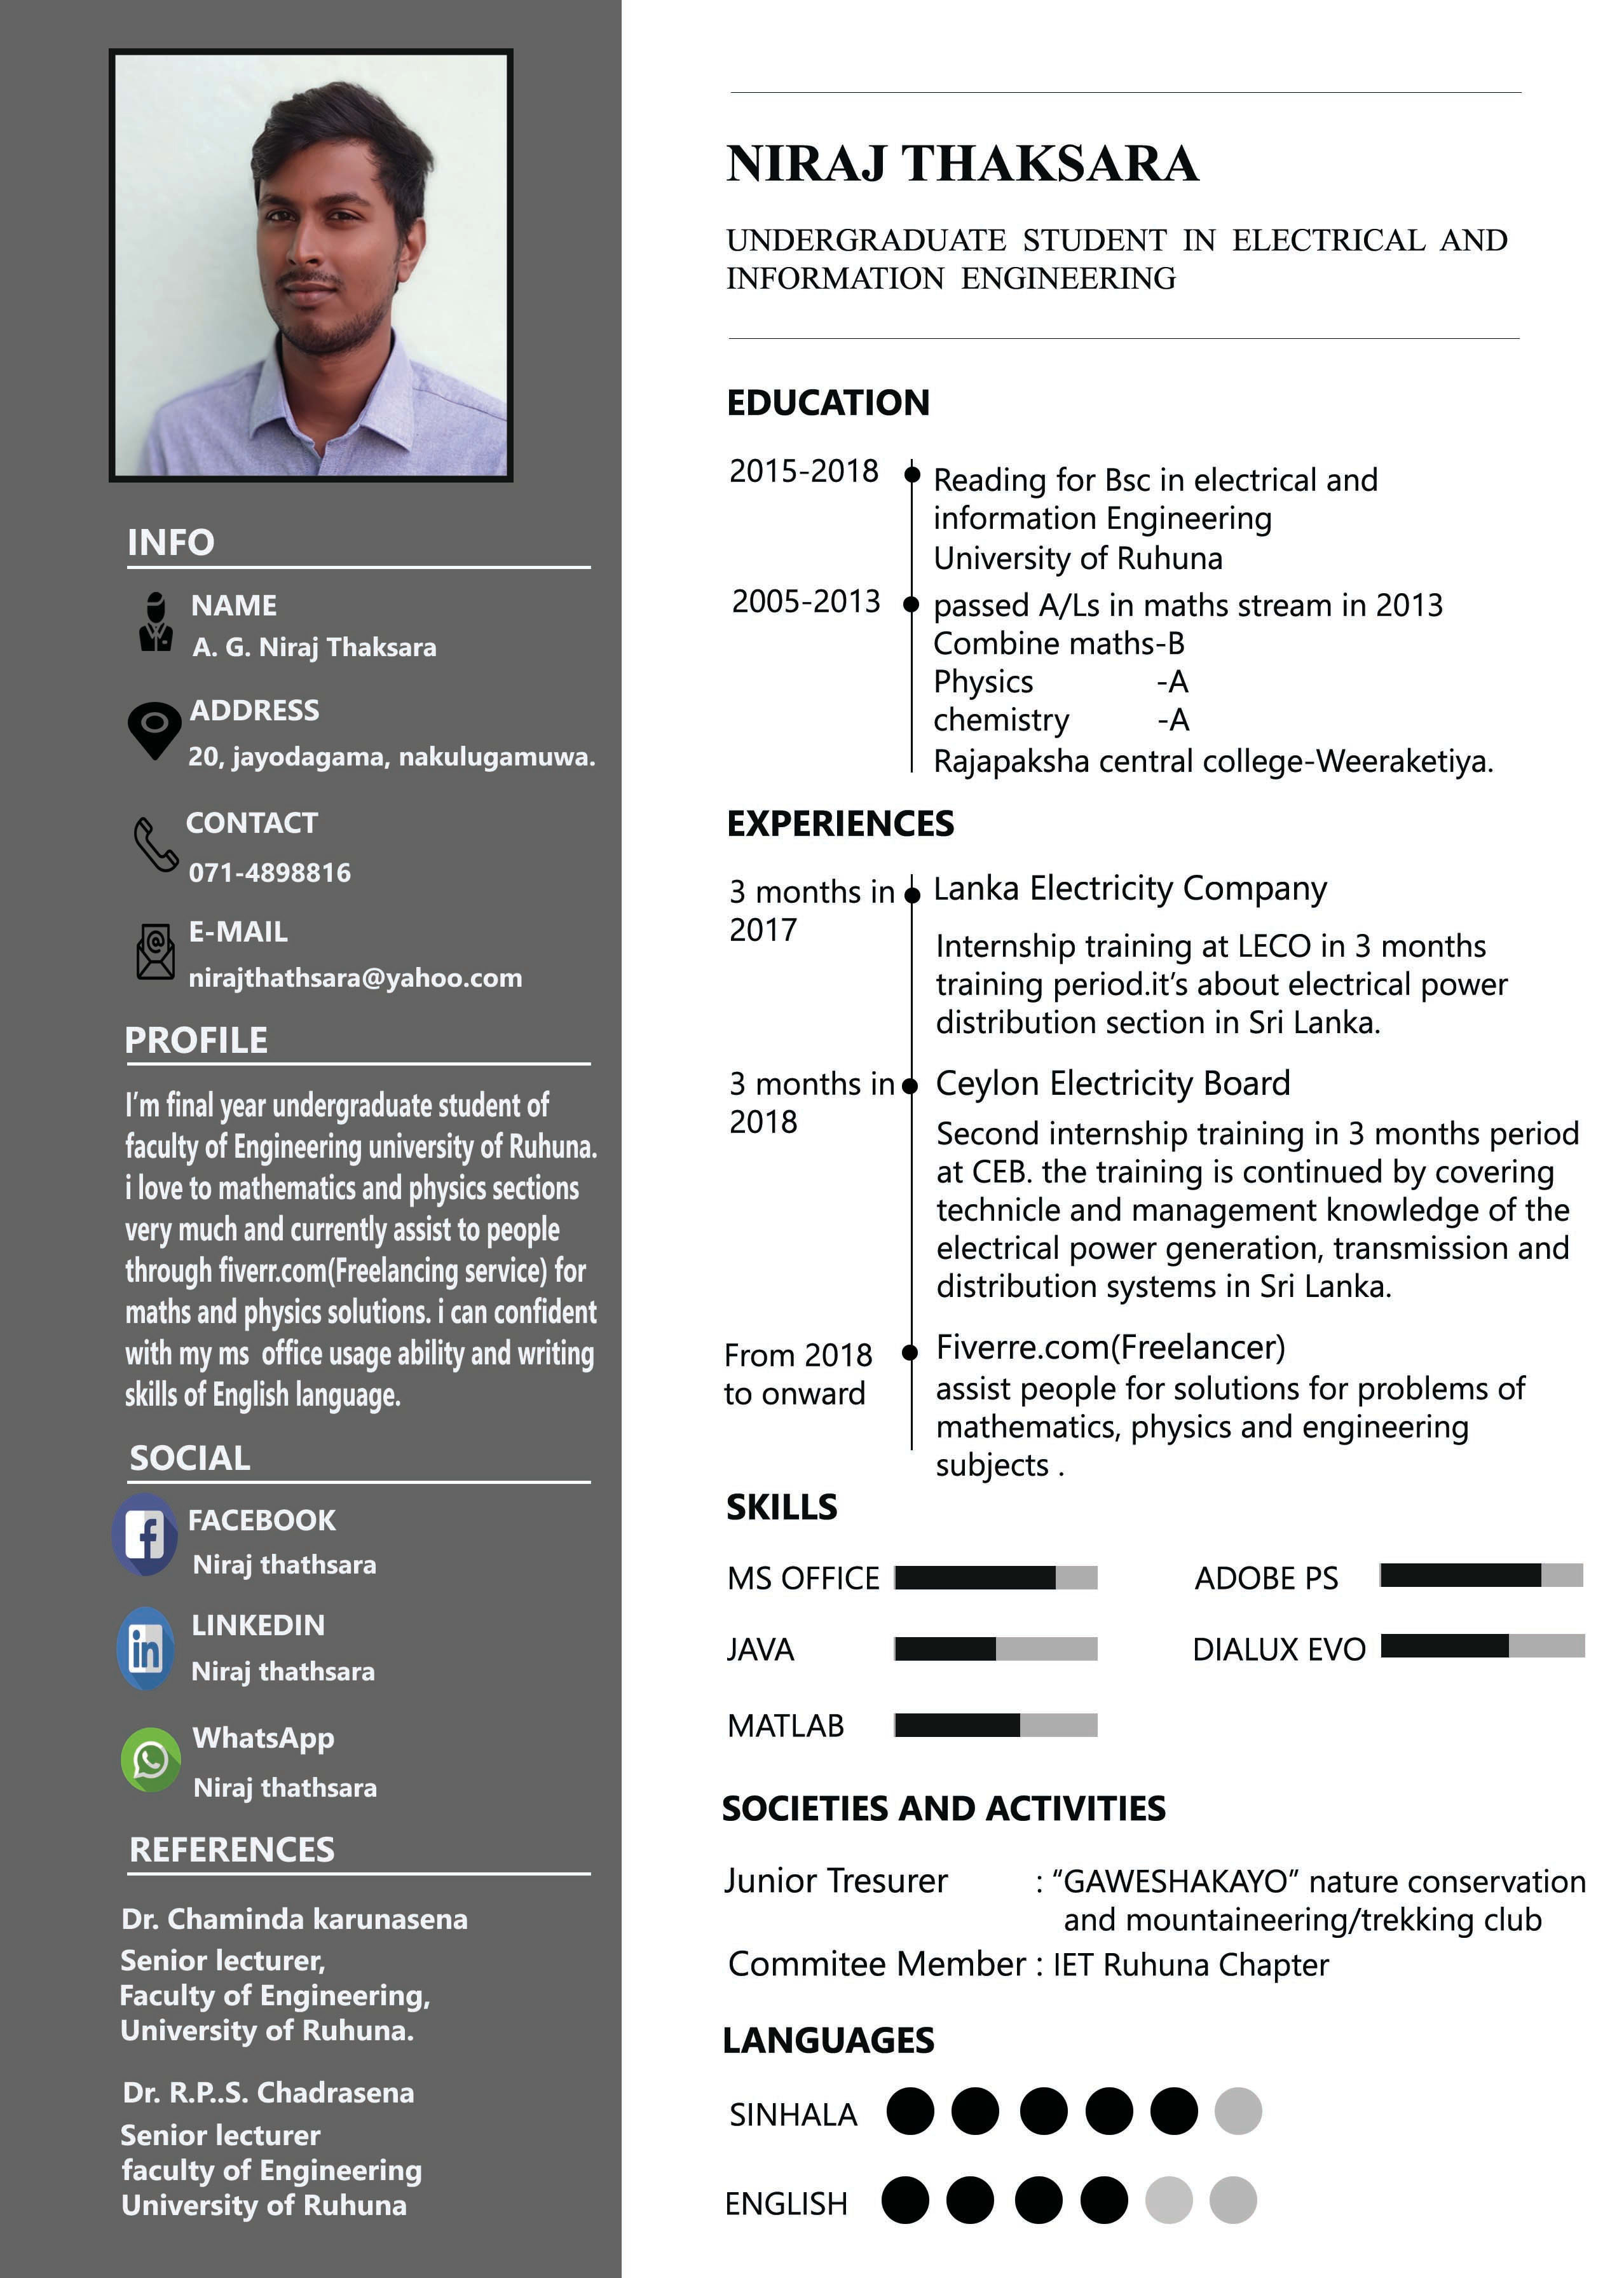 nirajthathsara : I will design you to smart and professional CV and cover  letter for $5 on www.fiverr.com